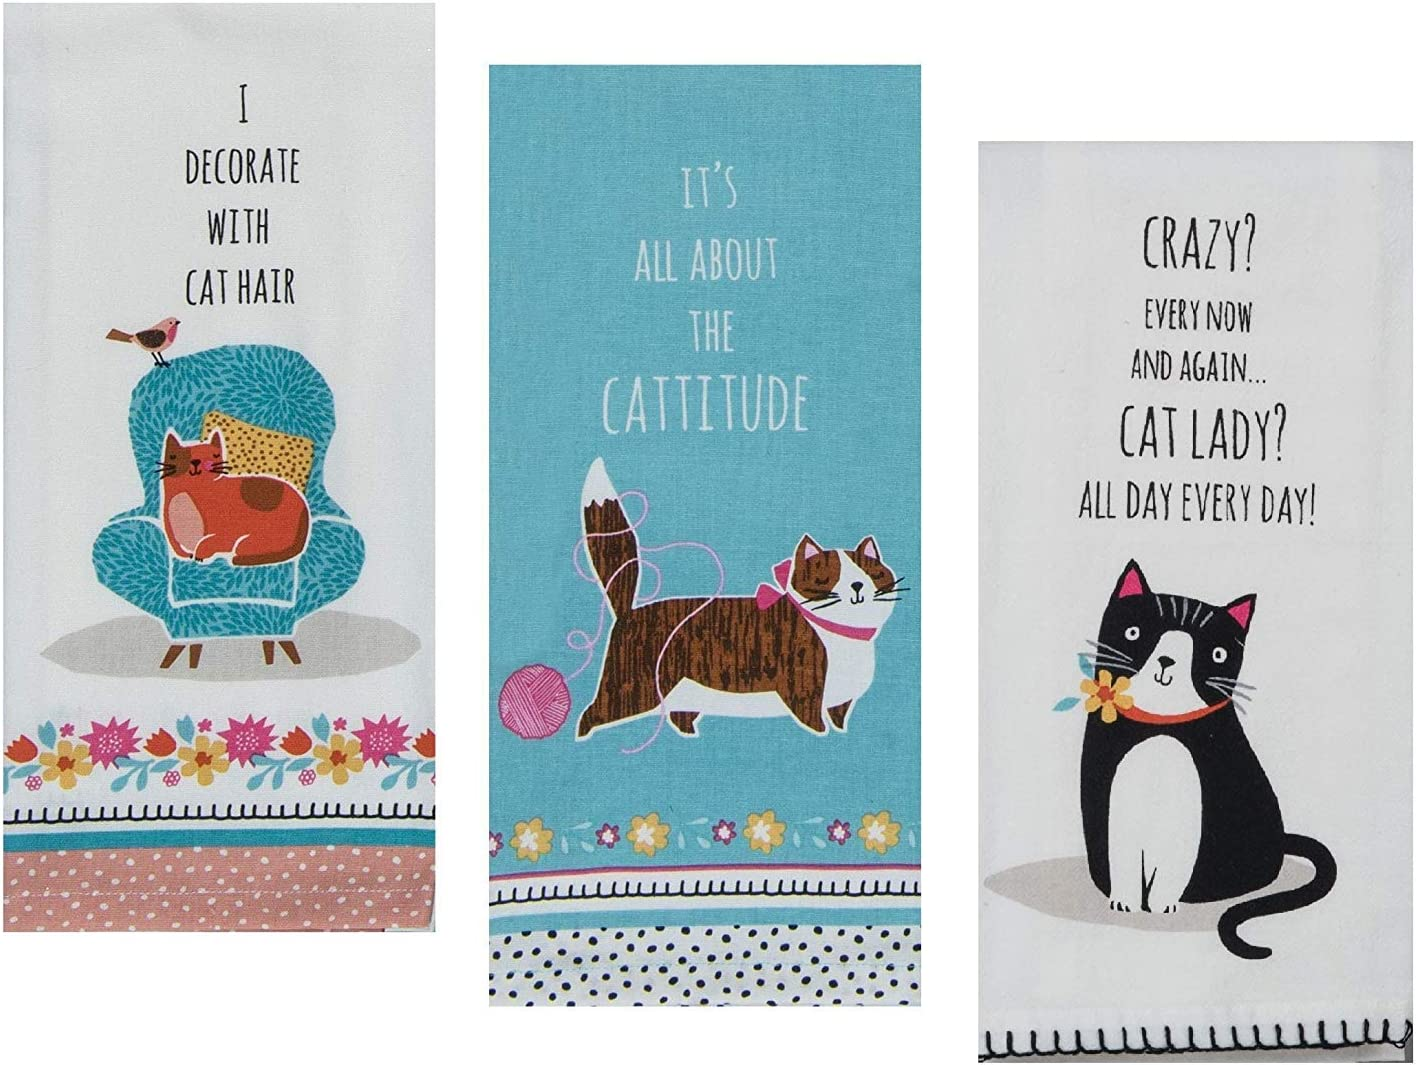 3 Cat Themed Decorative Cotton Set Ranking integrated Max 51% OFF 1st place Sayings Towels Kitchen with